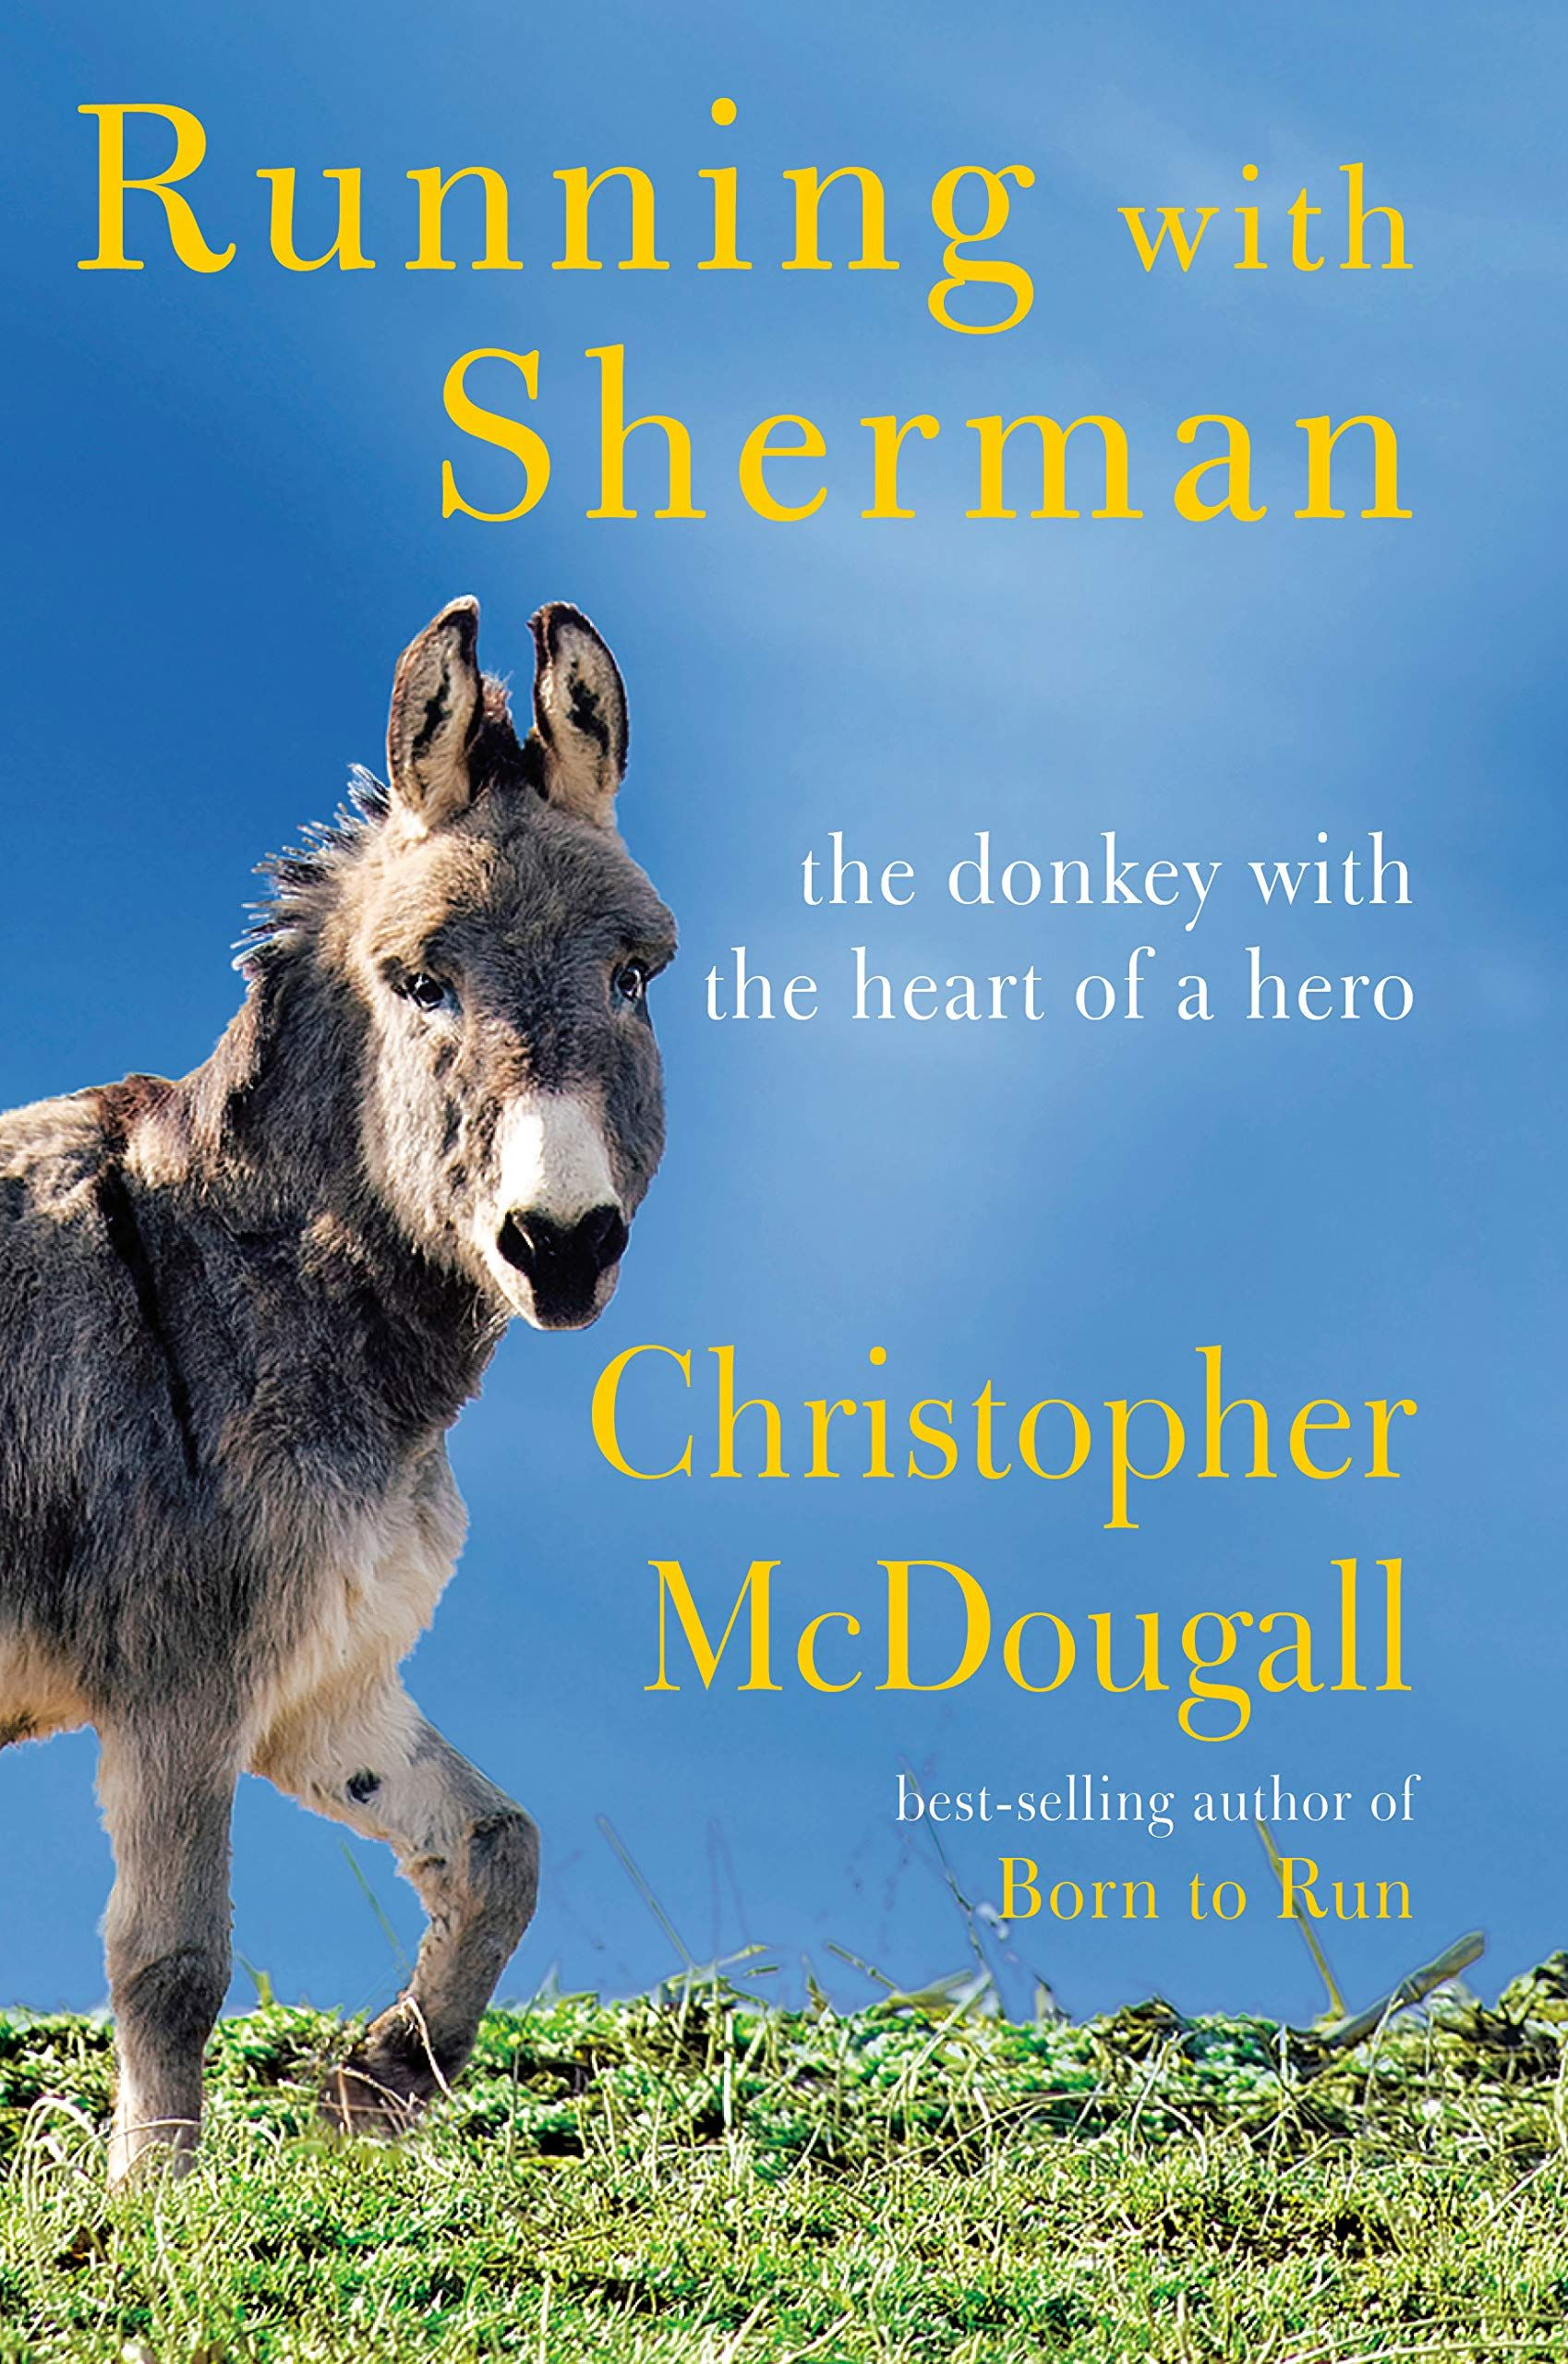 [PDF] Download Running with Sherman by Christopher